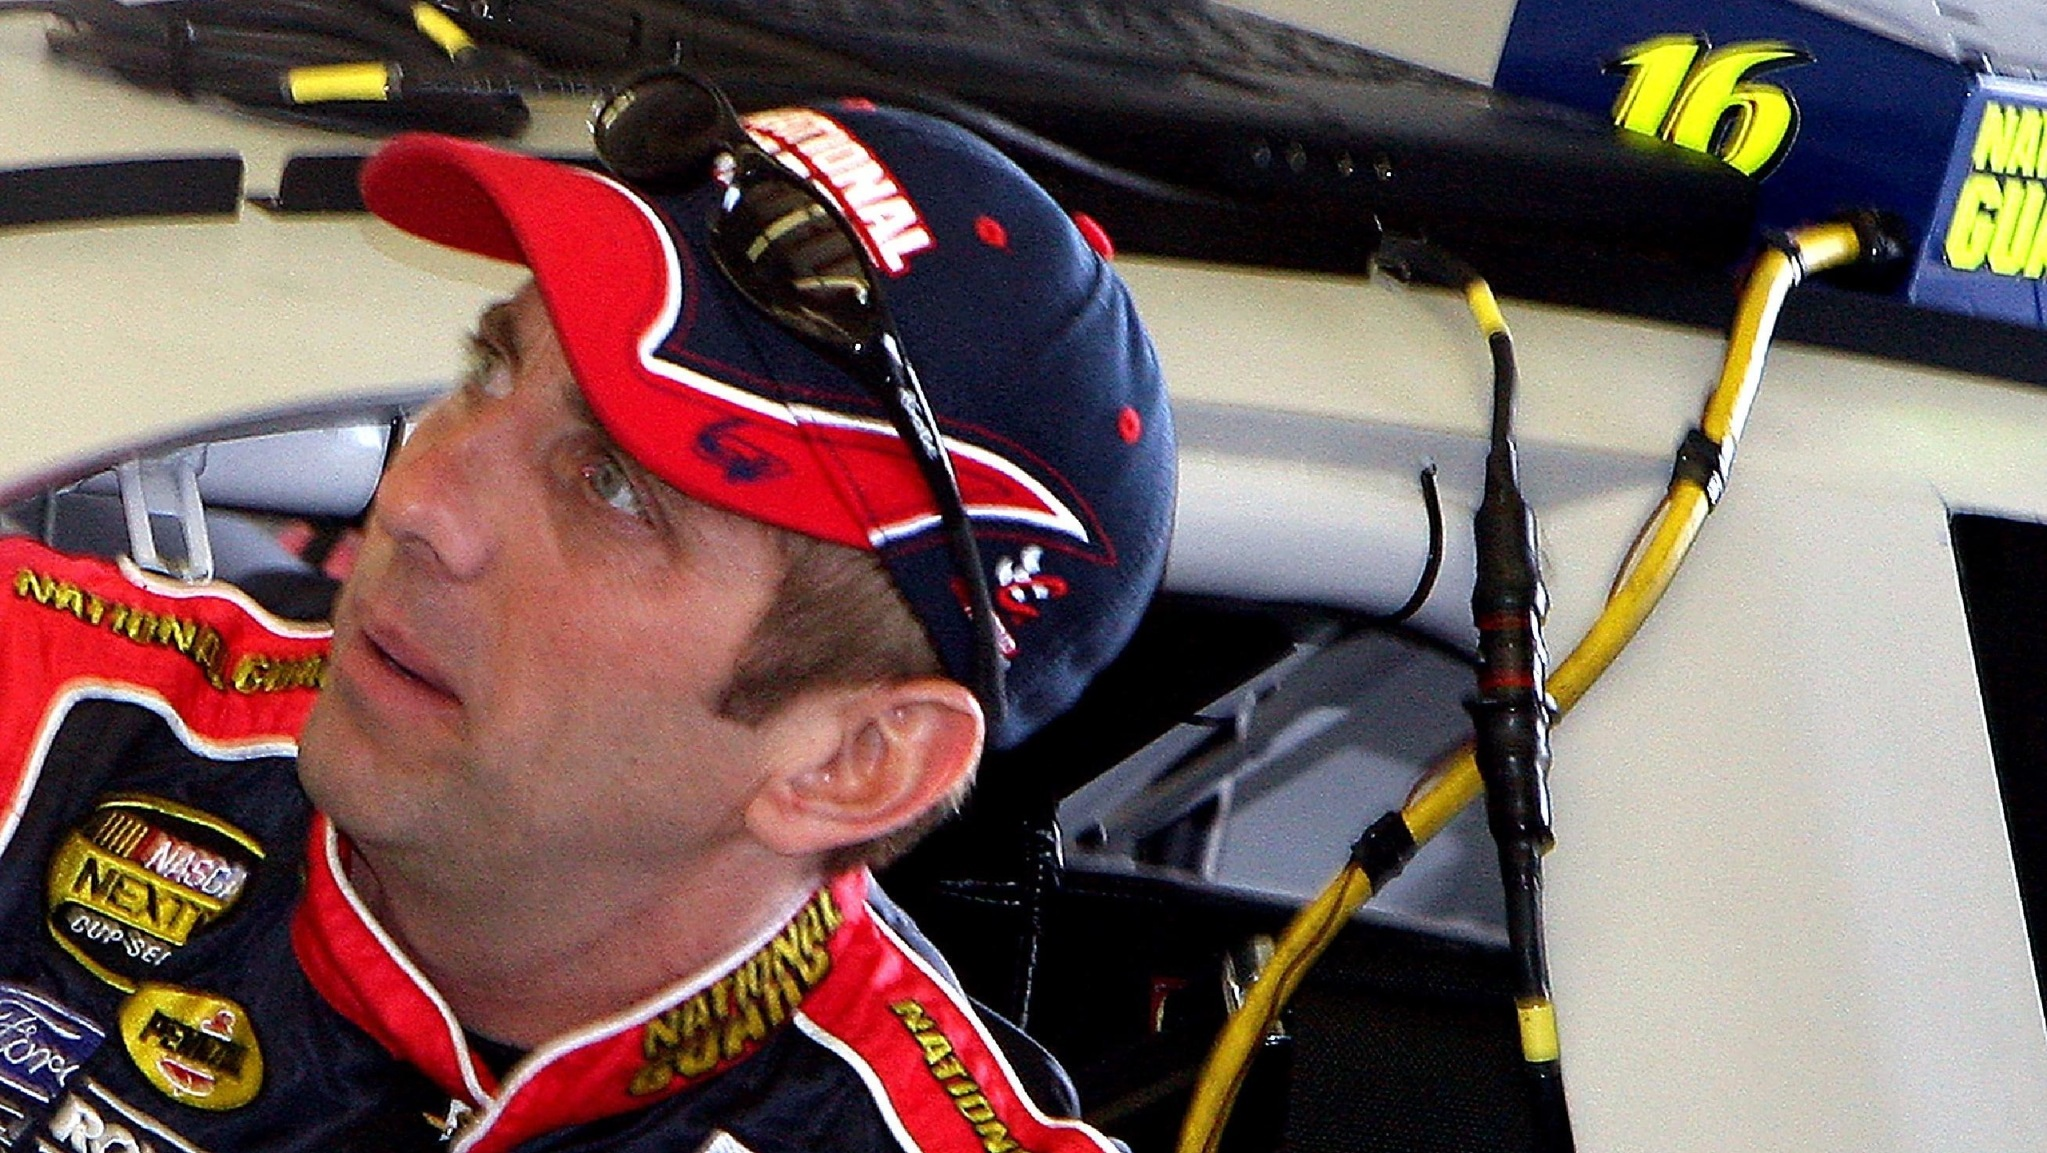 Biffle nearing contract extension with Roush